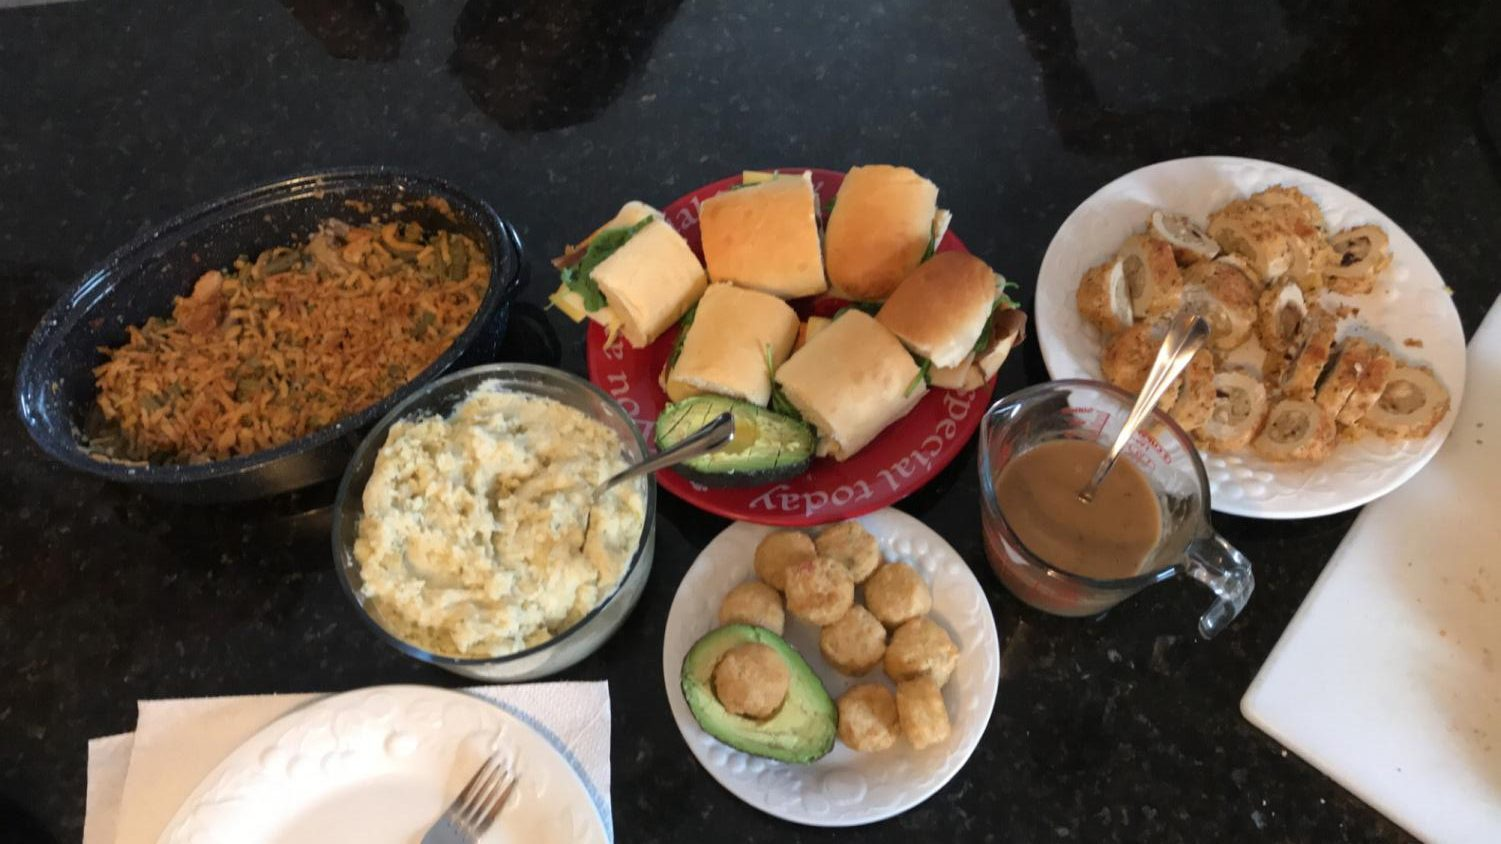 Friendsgiving dishes included a green bean casserole, sandwiches, garlic mashed potatoes, and much more